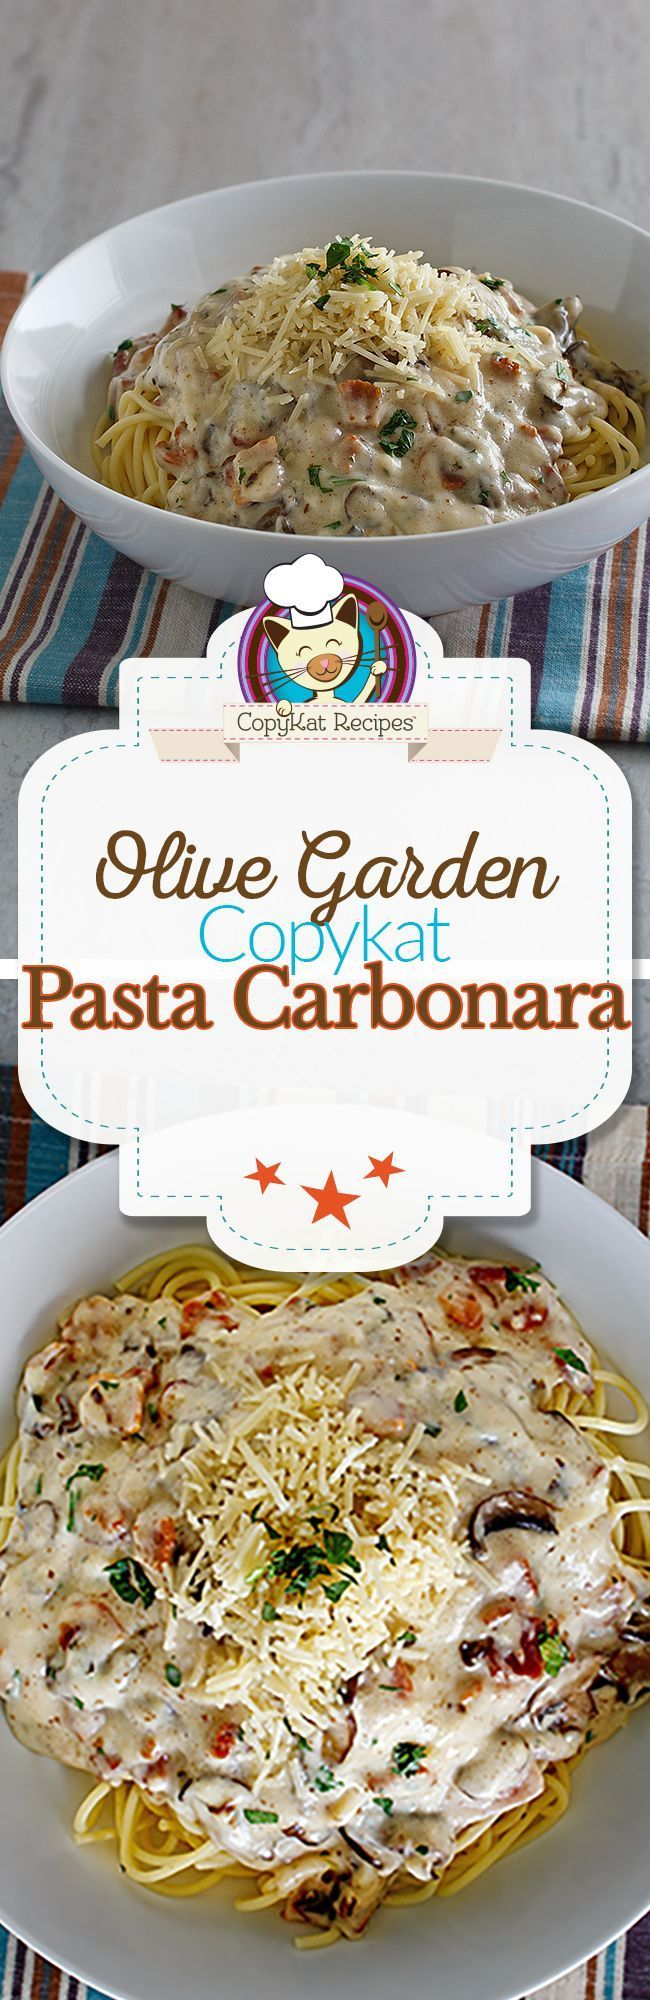 You can recreate the Olive Garden Spaghetti Carbonara at home with this easy copycat recipe.